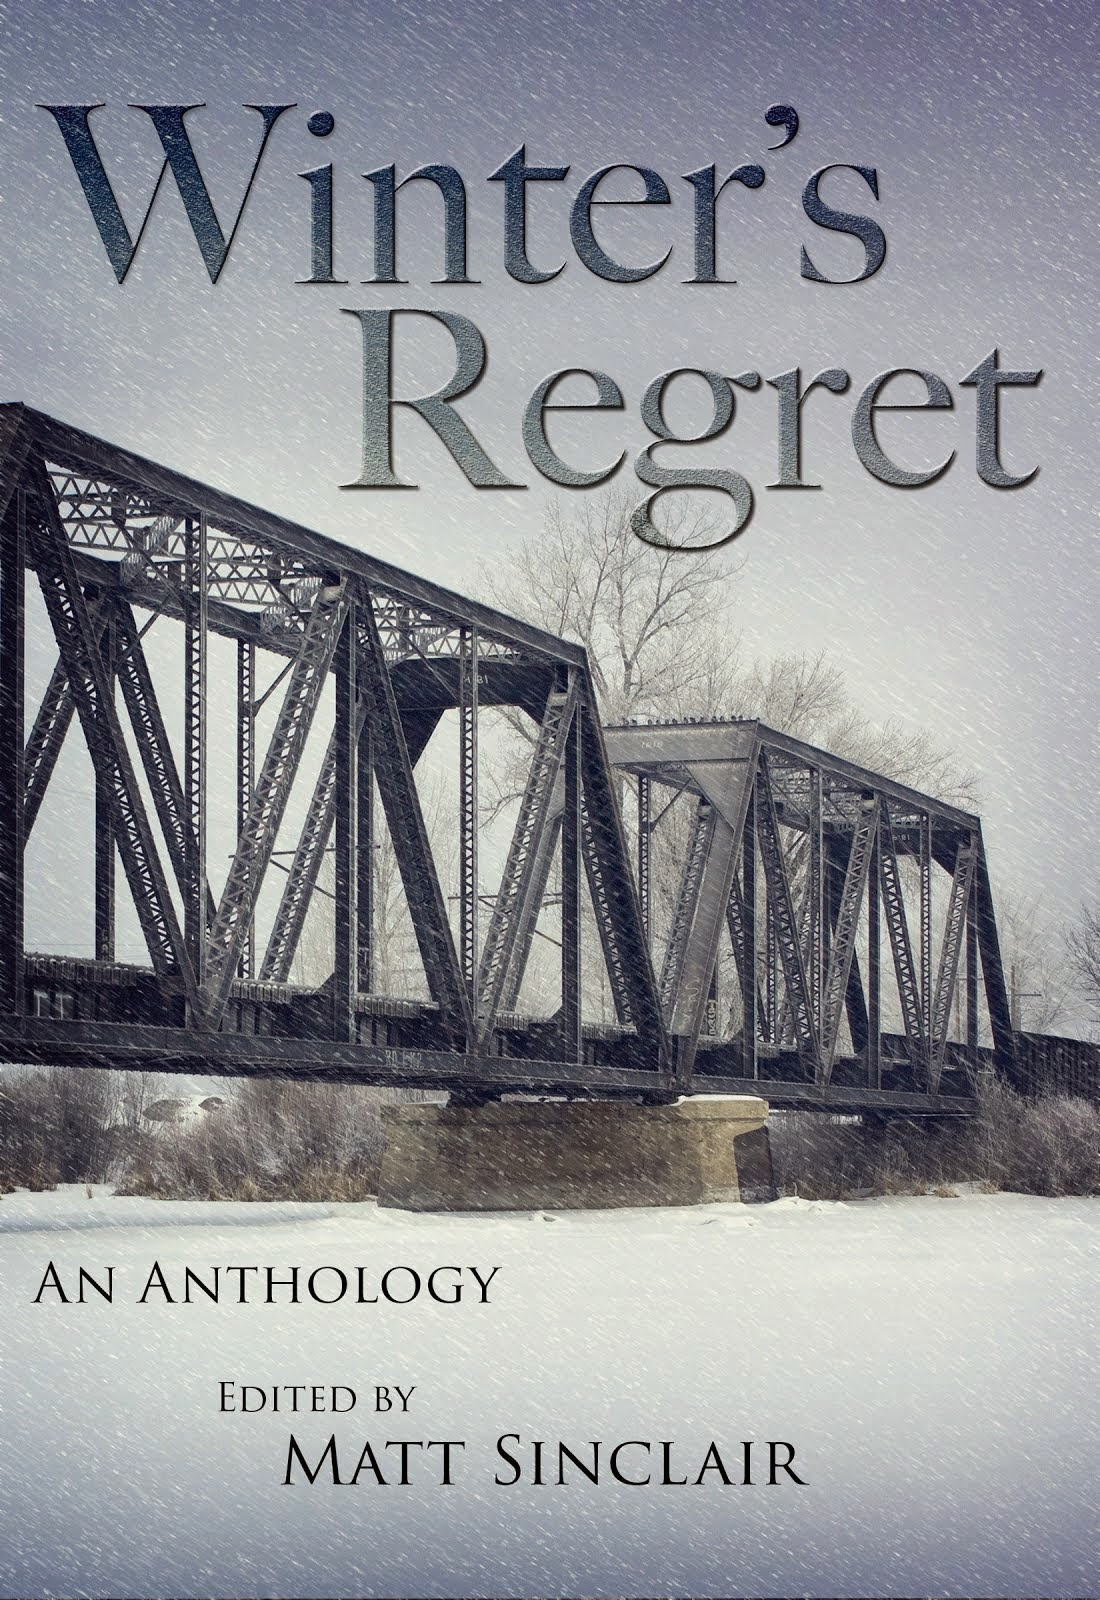 Winter's Regret